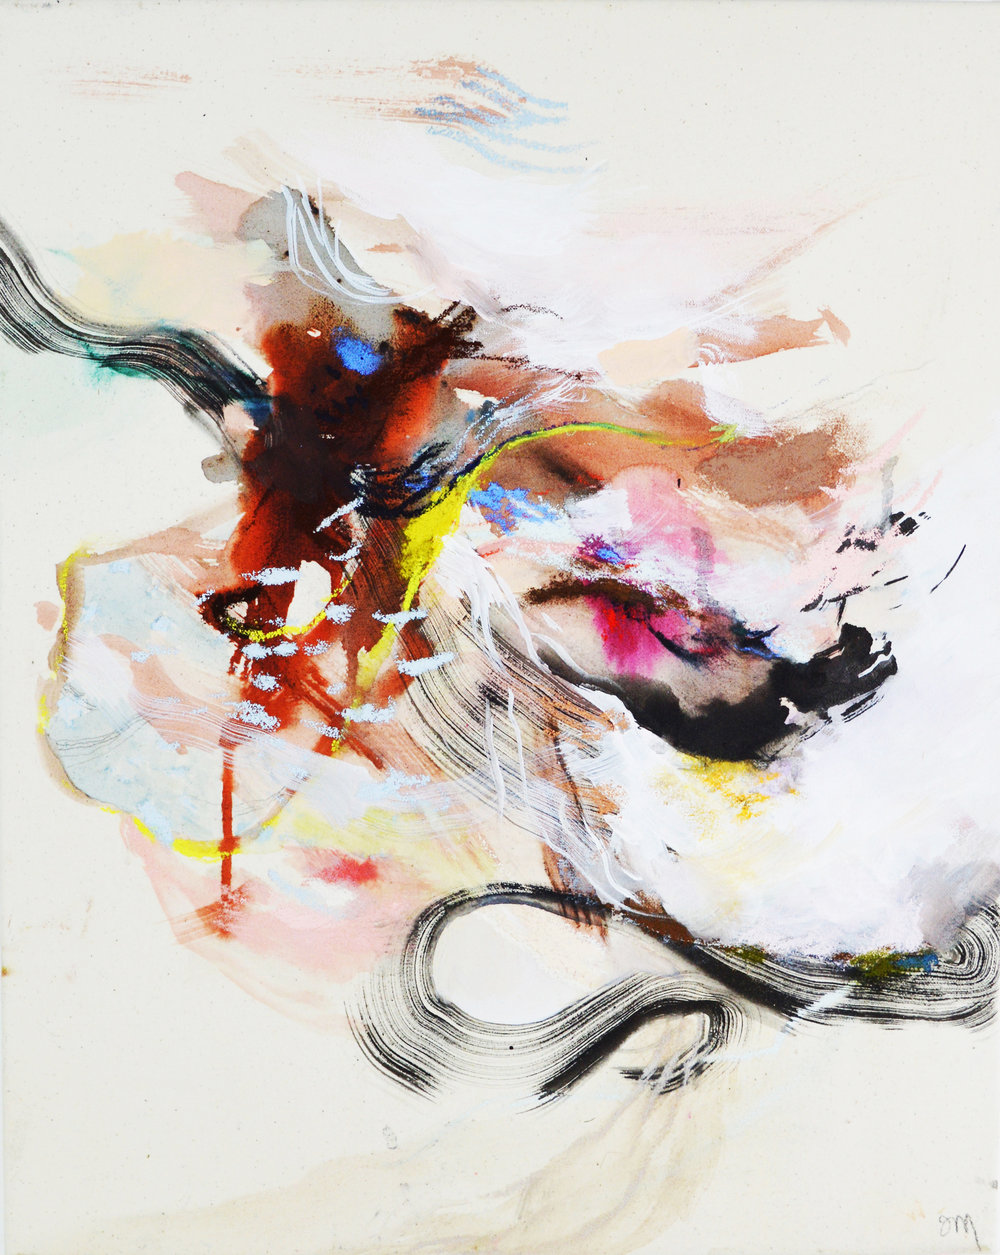 Who said abstract had to be boring? Jessica's works burst with energy, focus, and are extremely powerful.